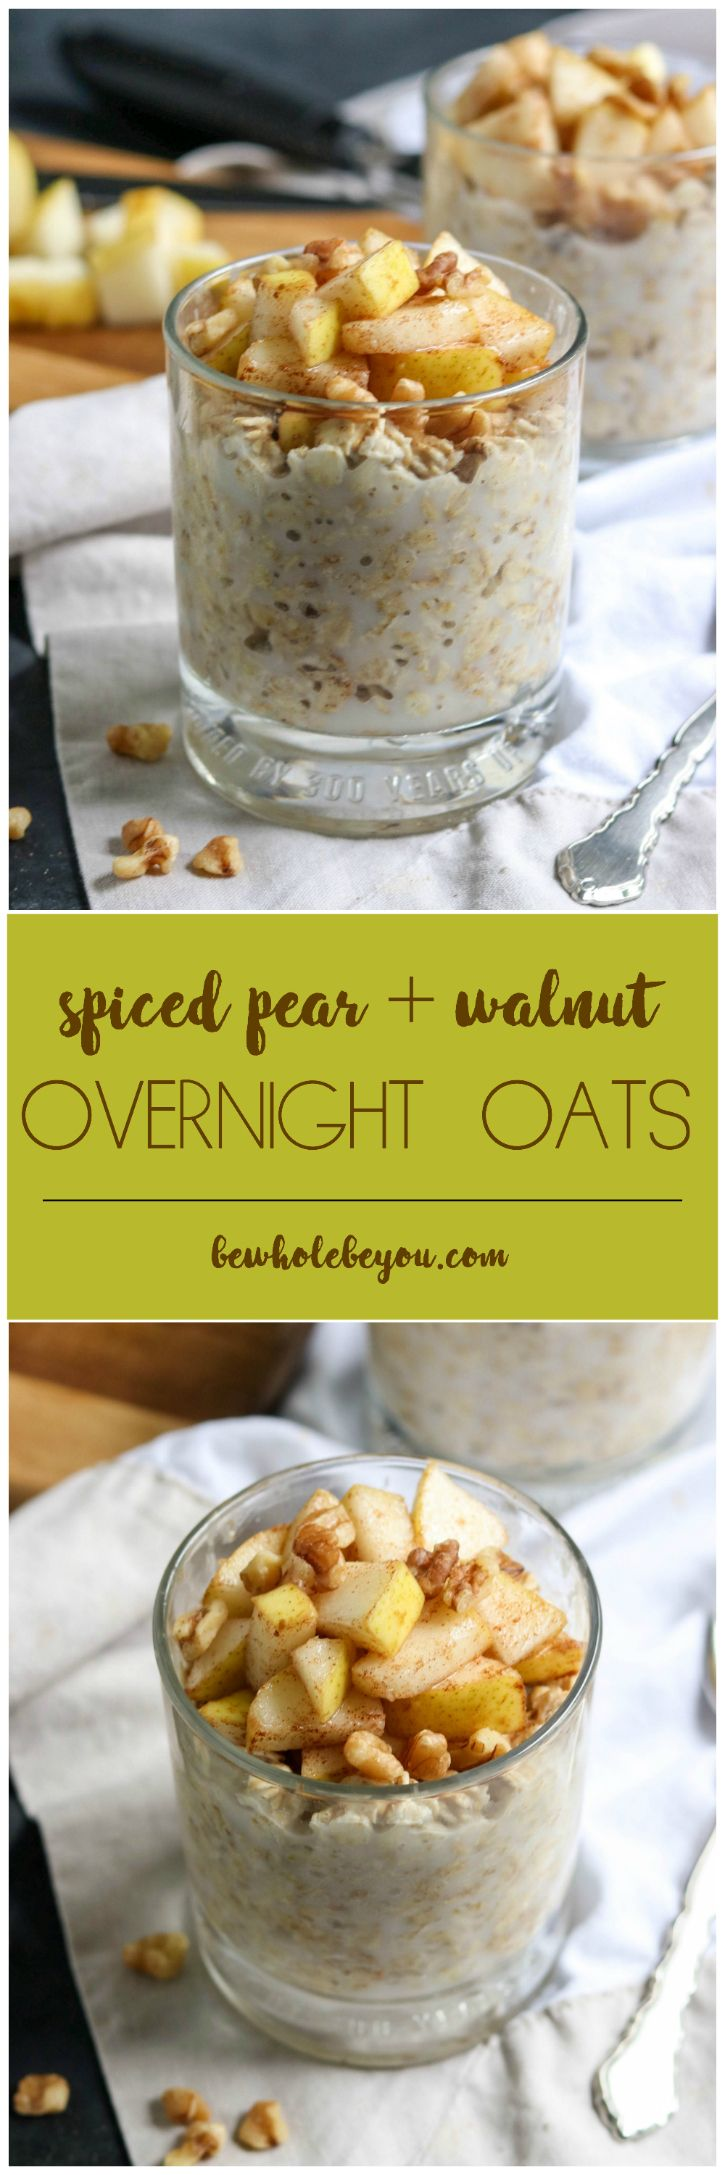 Fall is in the air and these Spiced Pear and Walnut Overnight Oats are the perfect way to welcome the season. Maple sweetened and full of hearty rolled oats, your morning will be off to the perfect start with this make ahead breakfast! bewholebeyou.com